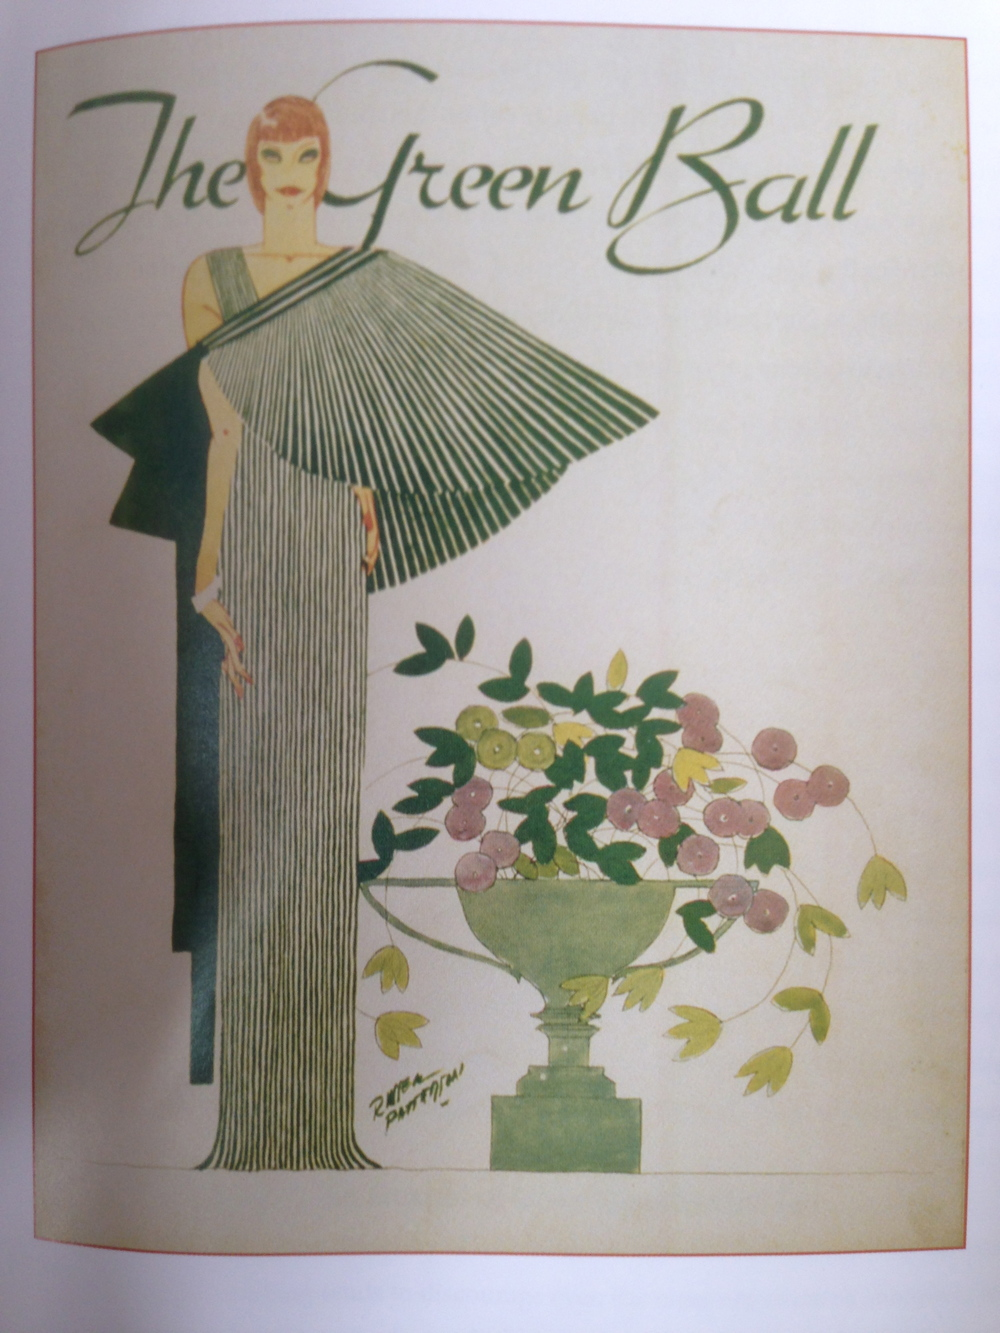 Invitation to the 1934 Green Ball, from the Edward L. Bernays papers, Library of Congress. From Blaszczyk,  The Color Revolution,  161.